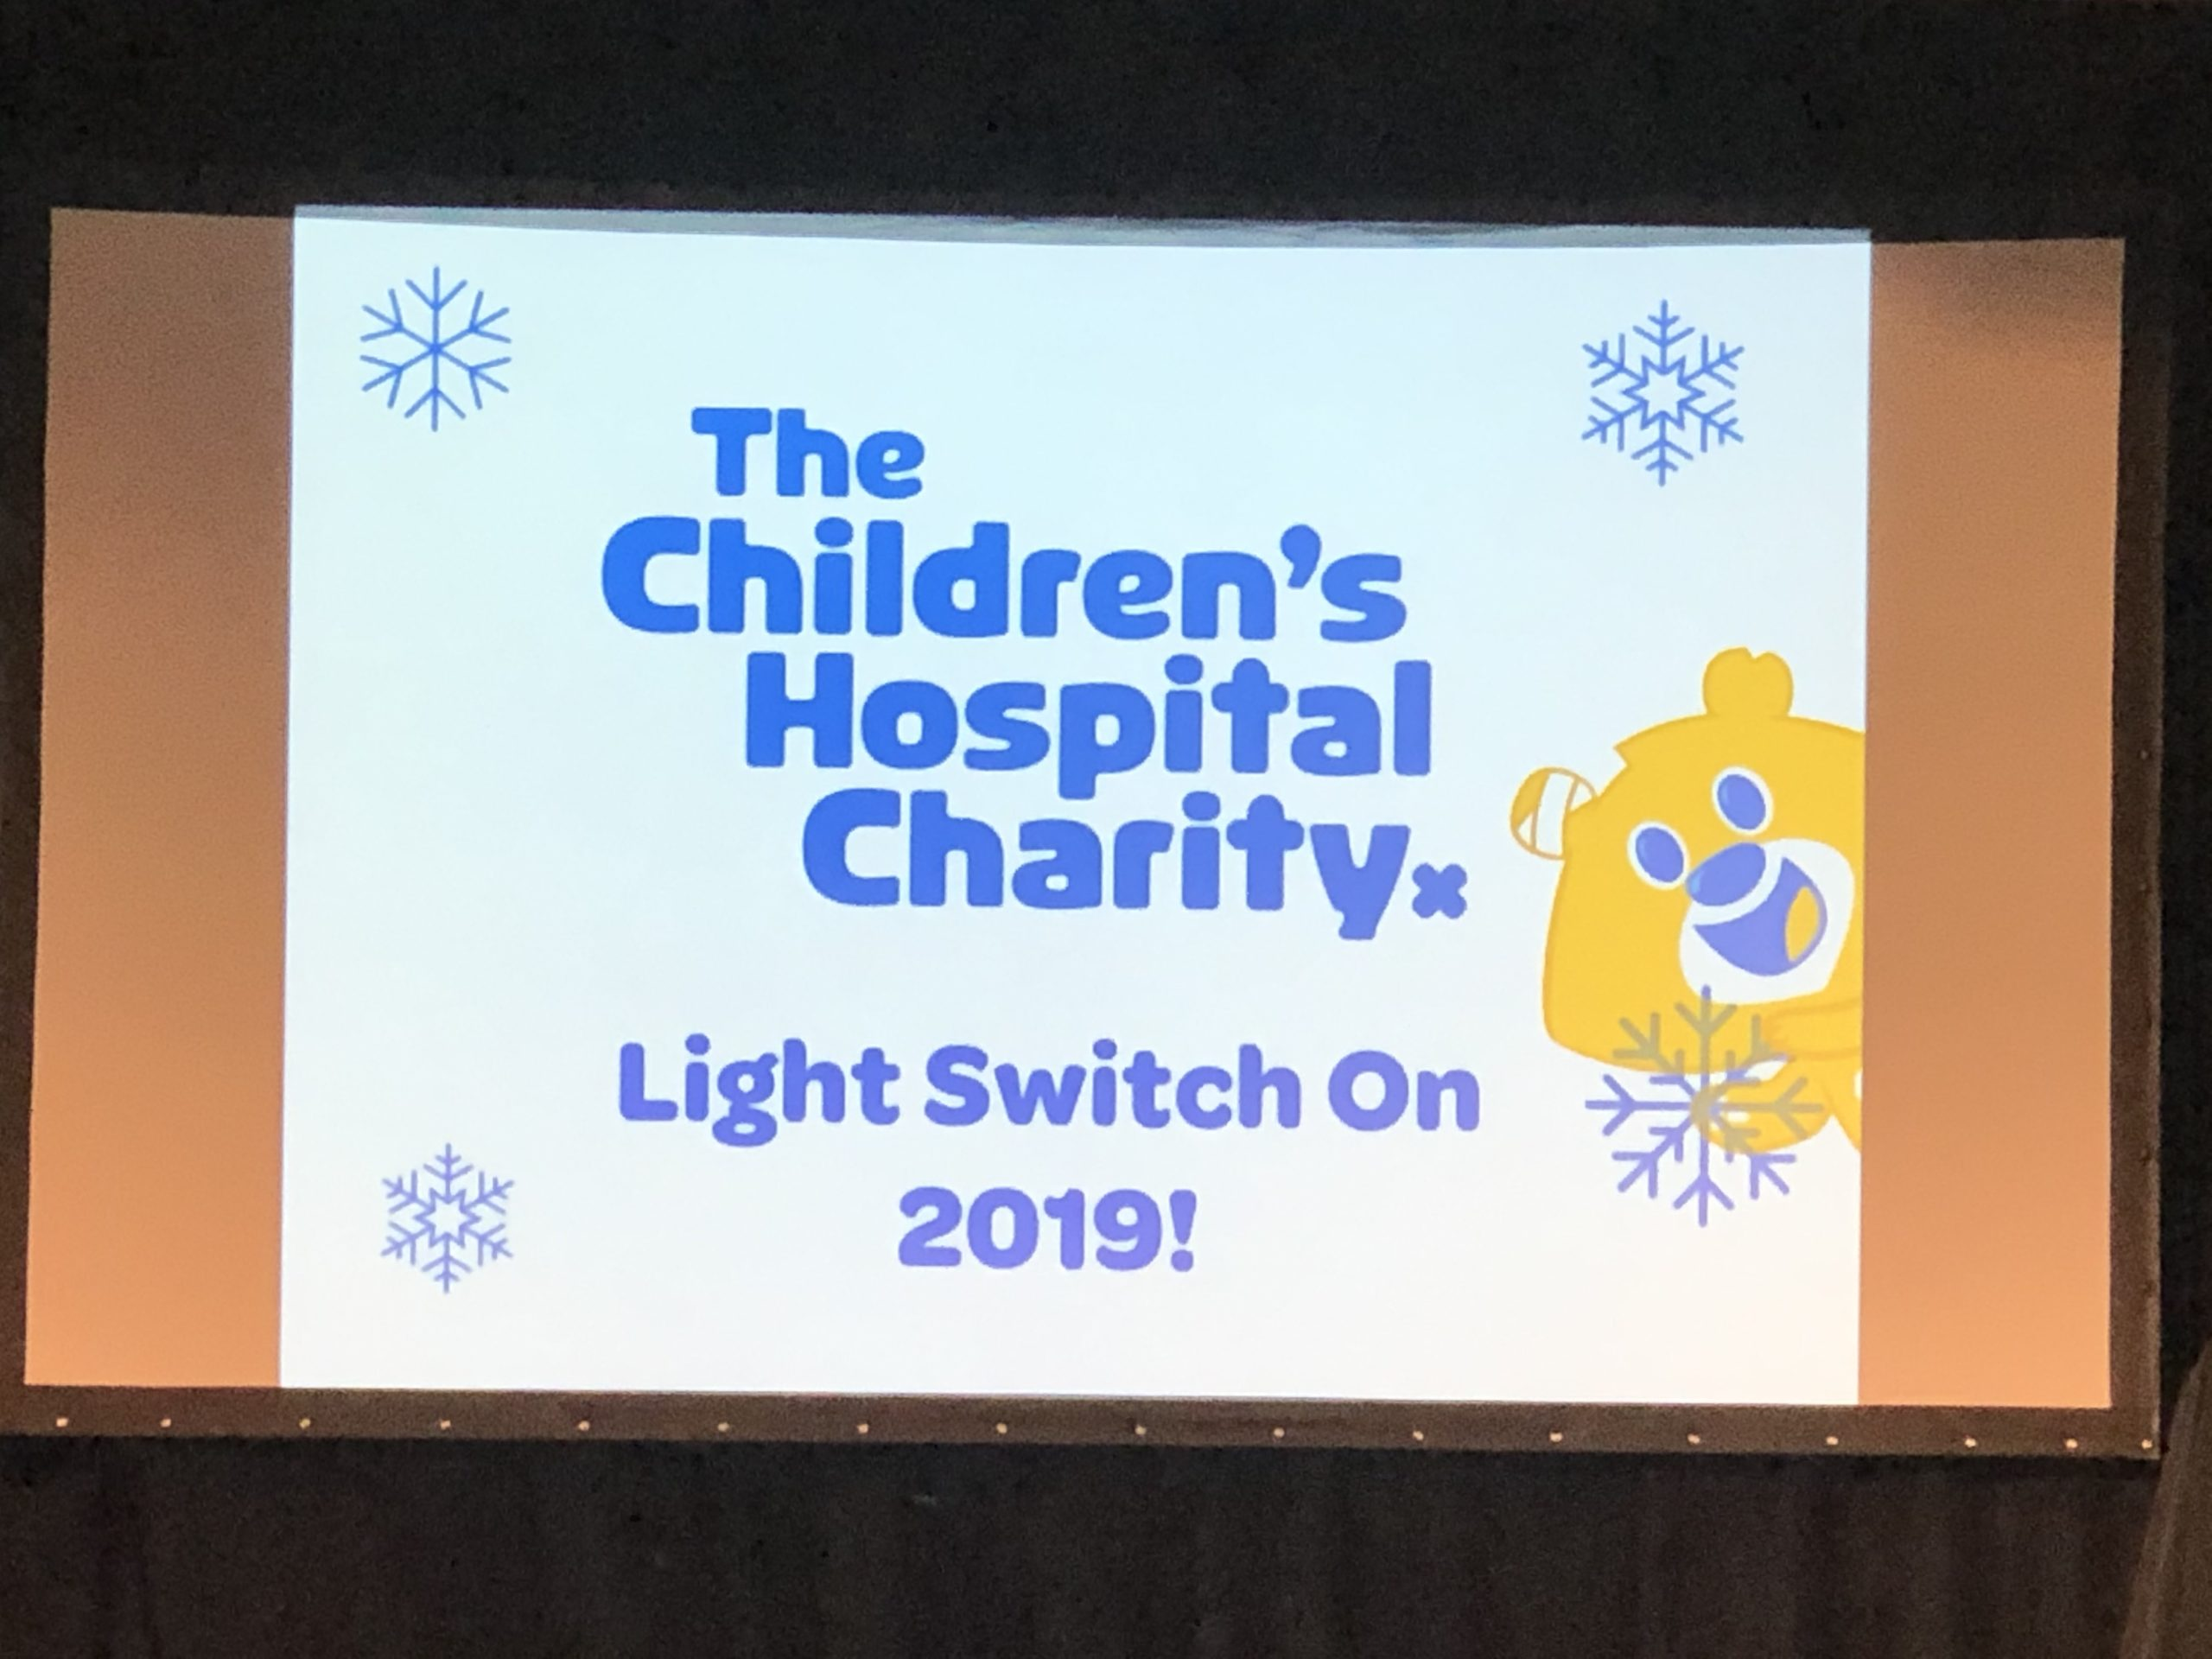 Childrens Hospital Charity light switch on 2019 presentation